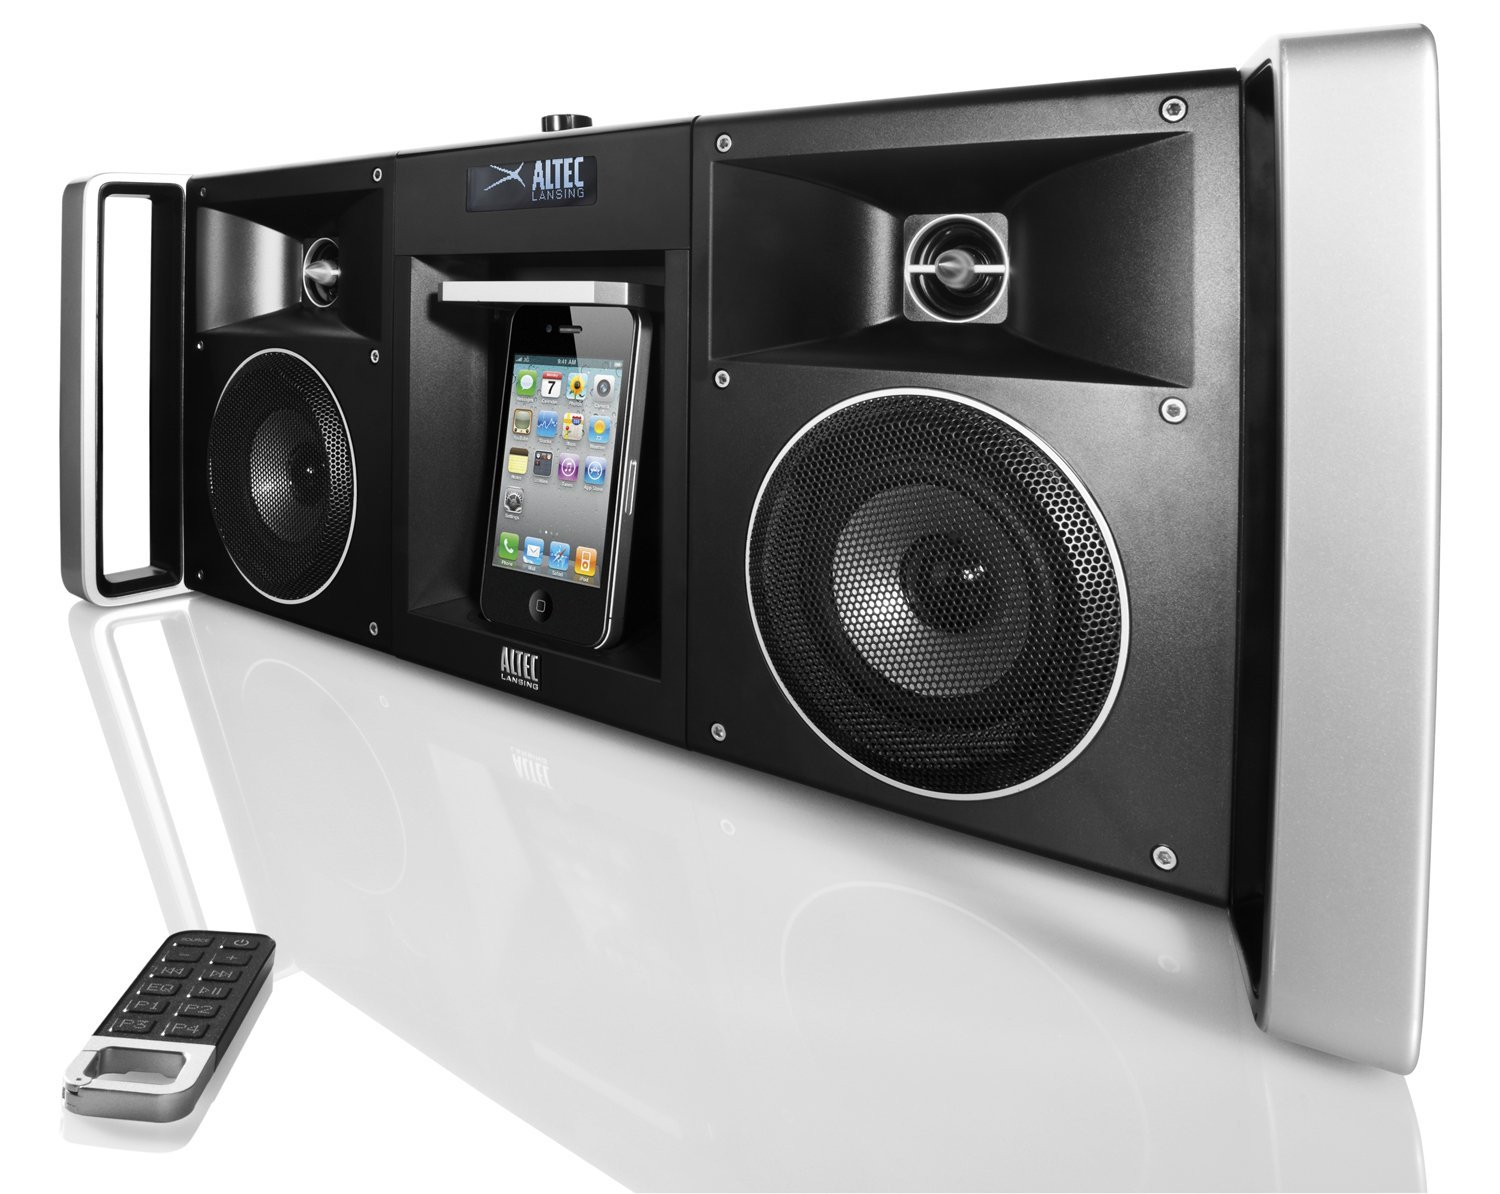 Altec Lansing iMT810 Digital Boombox price and specs